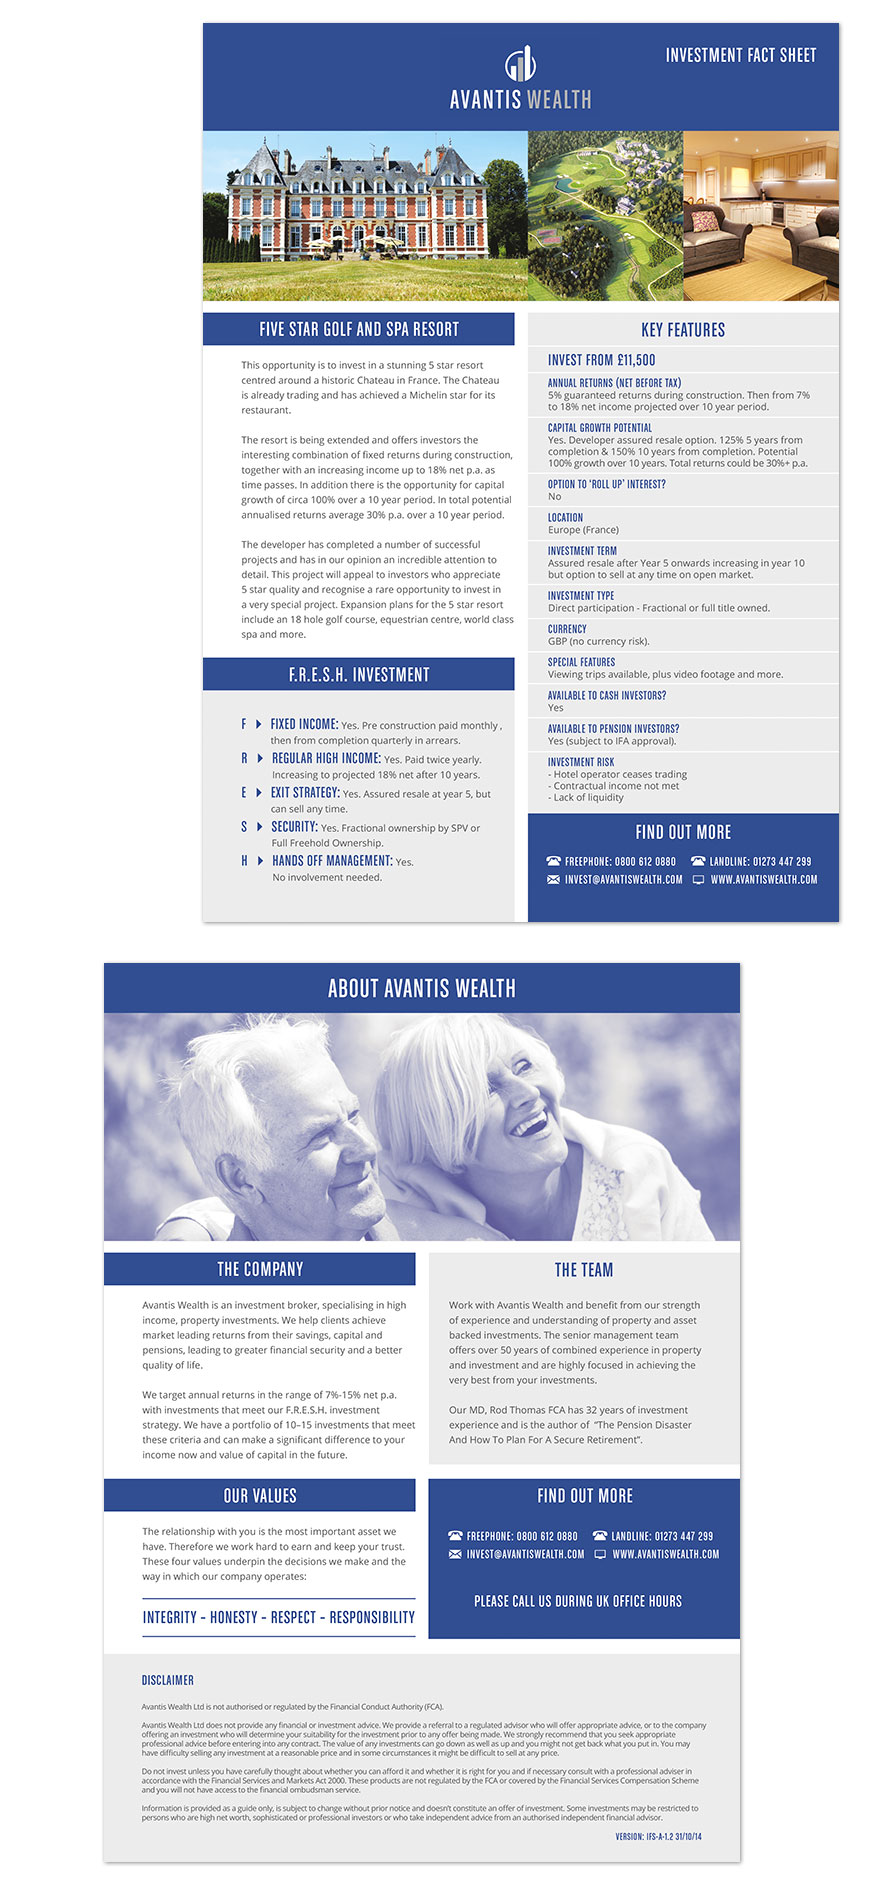 Avantis Wealth factsheet design, used for every investment opportunity to highlight key information and stats.